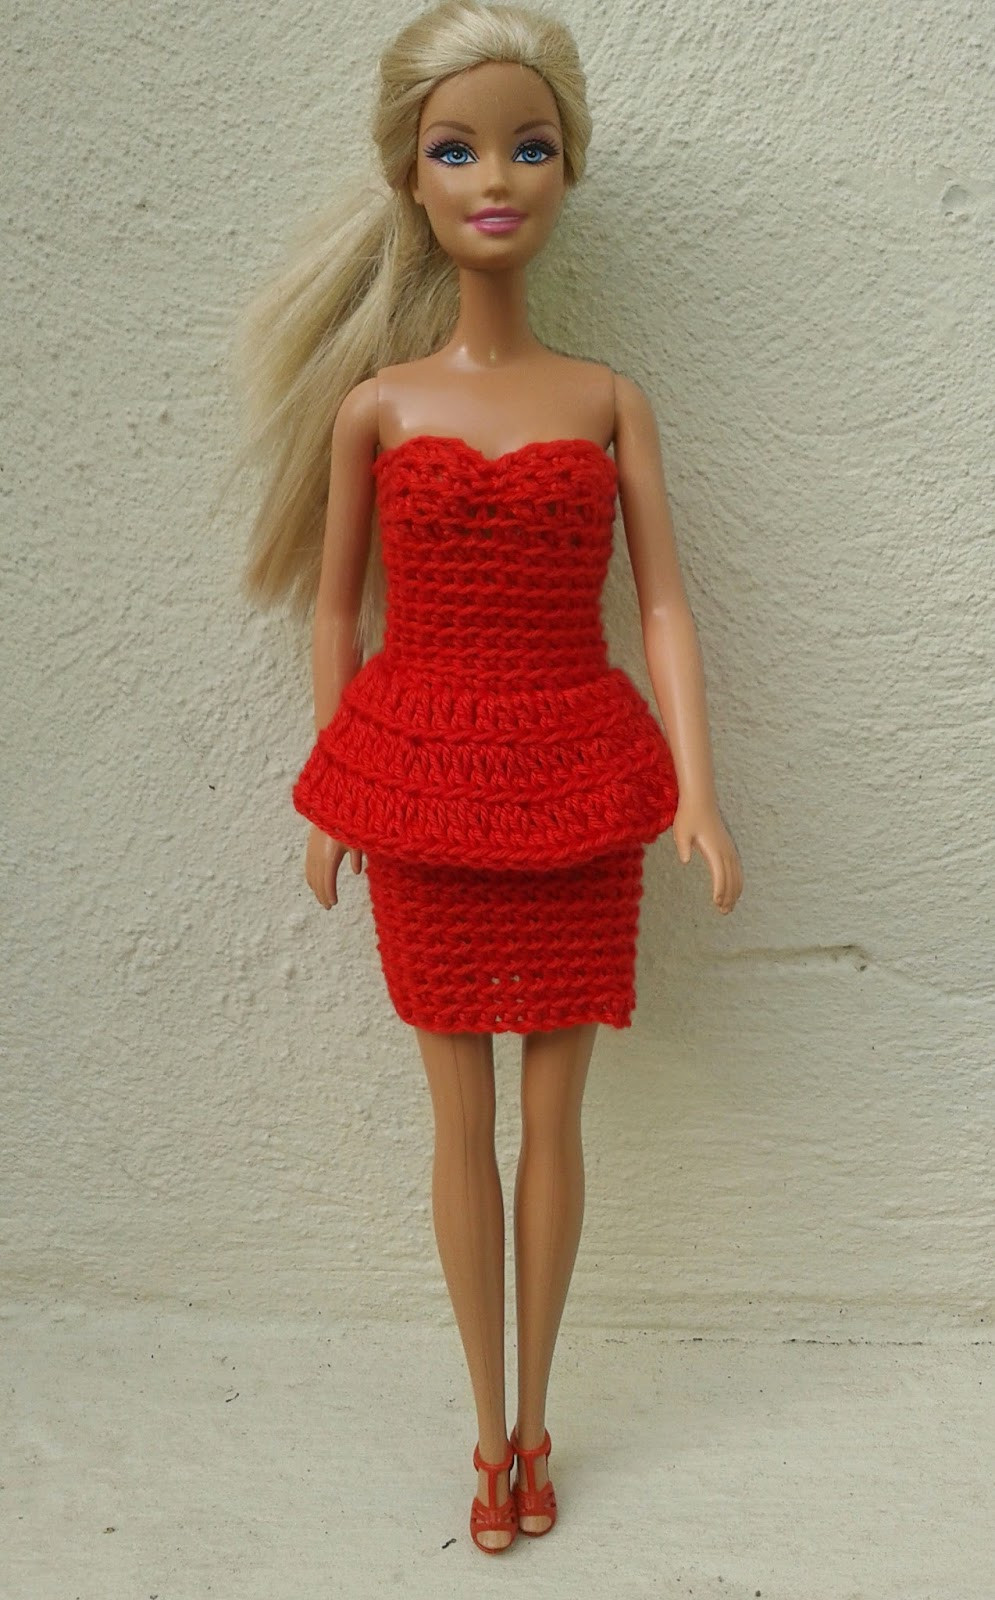 Lovely Linmary Knits Barbie In Red Crochet Dresses Crochet Barbie Clothes Of Marvelous 46 Photos Crochet Barbie Clothes